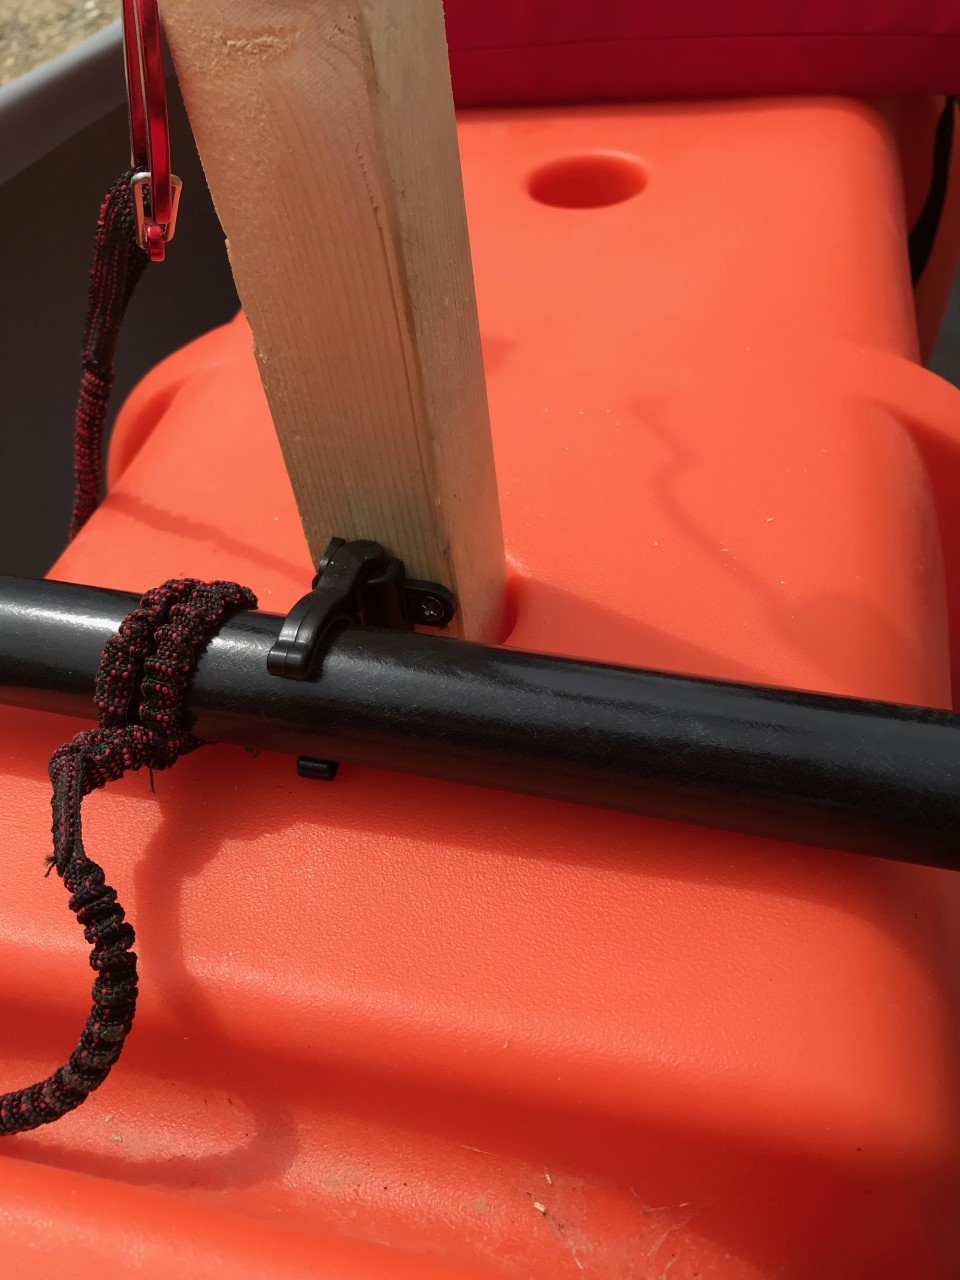 Pole for fishing rod holder and paddle holder